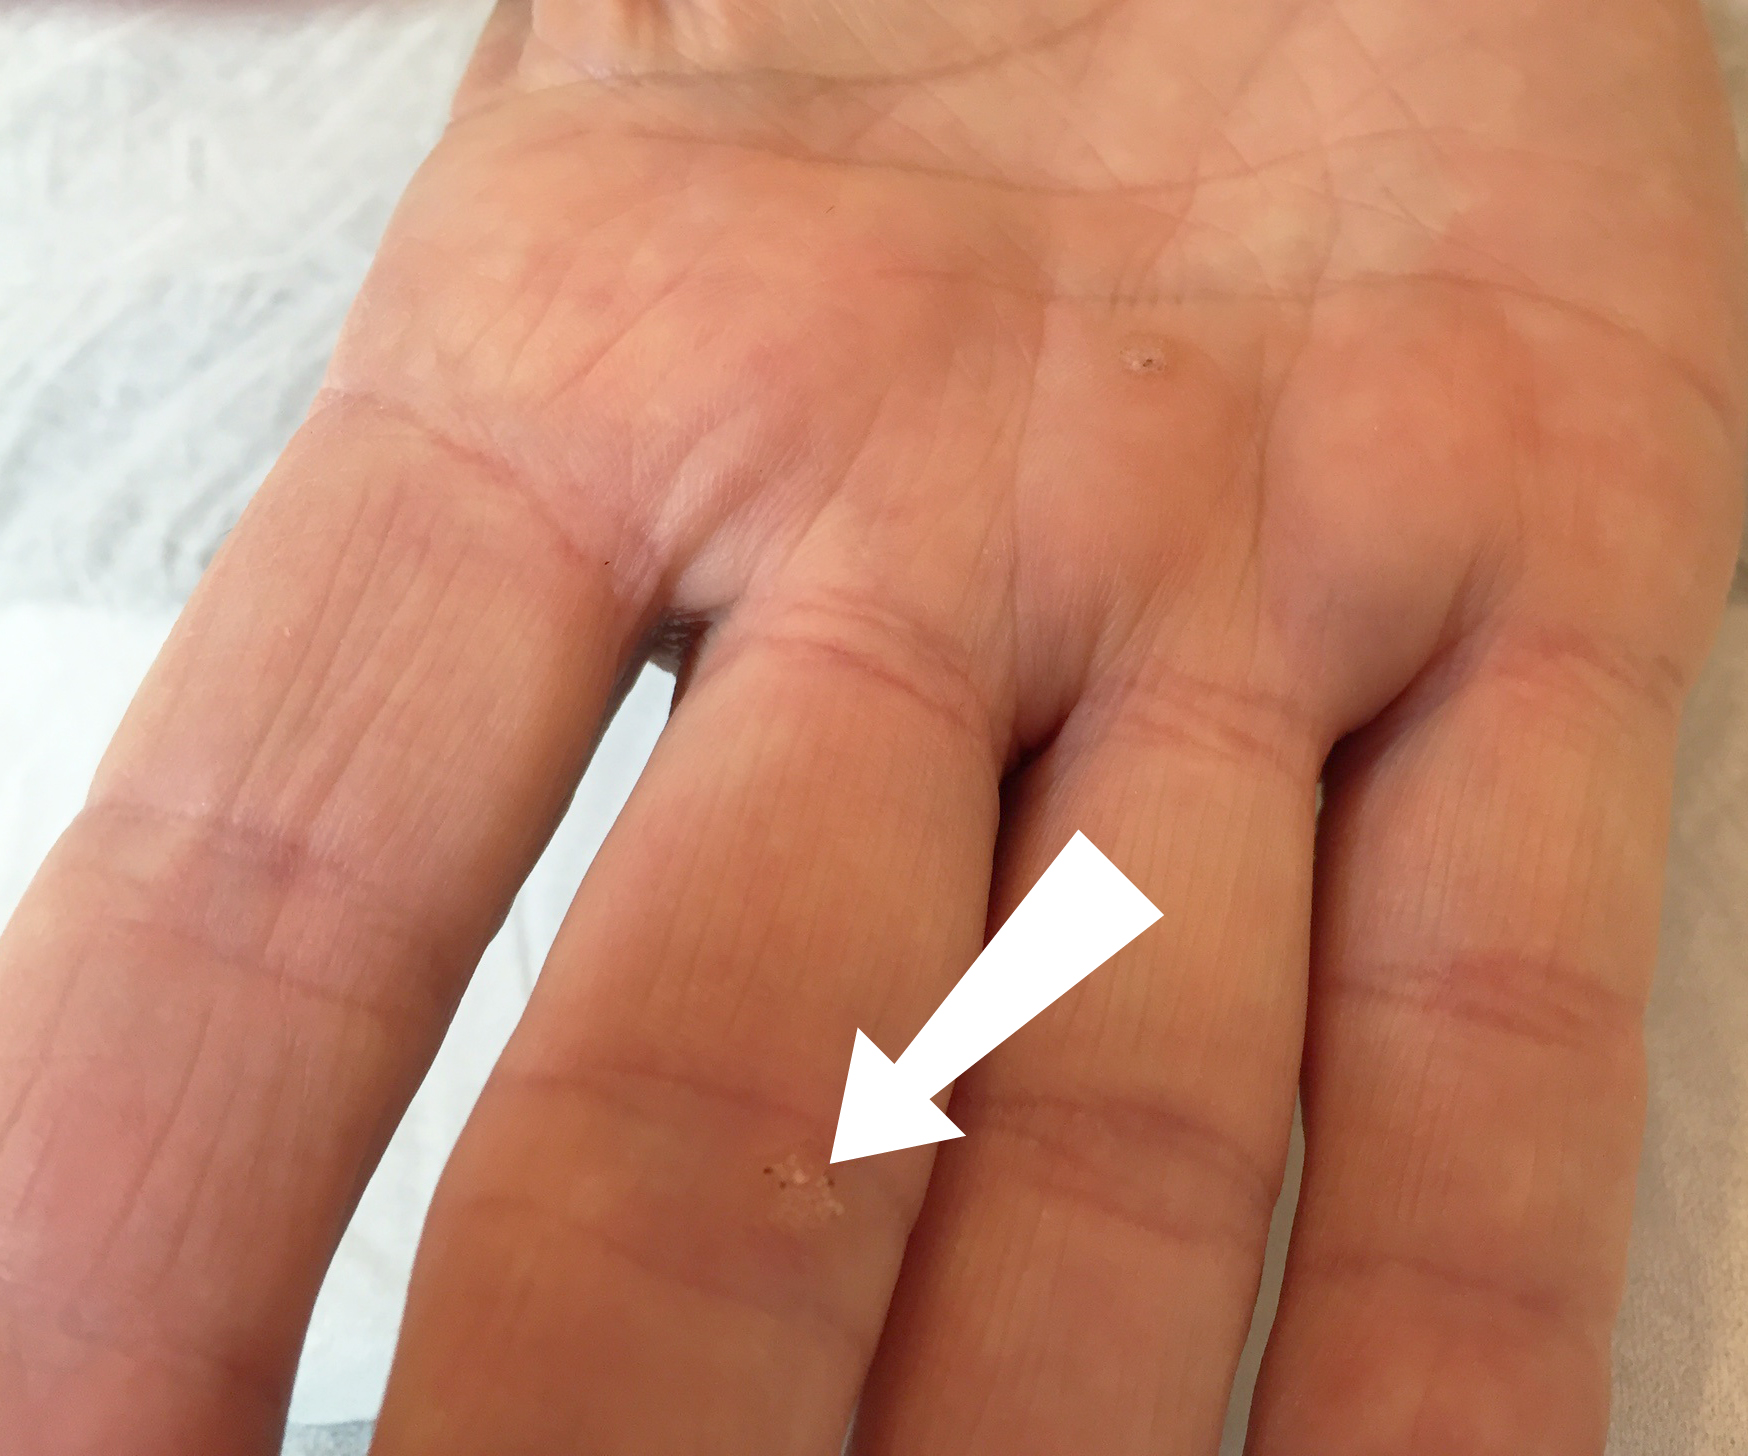 warts on hands during pregnancy papillomavirus infection cancer